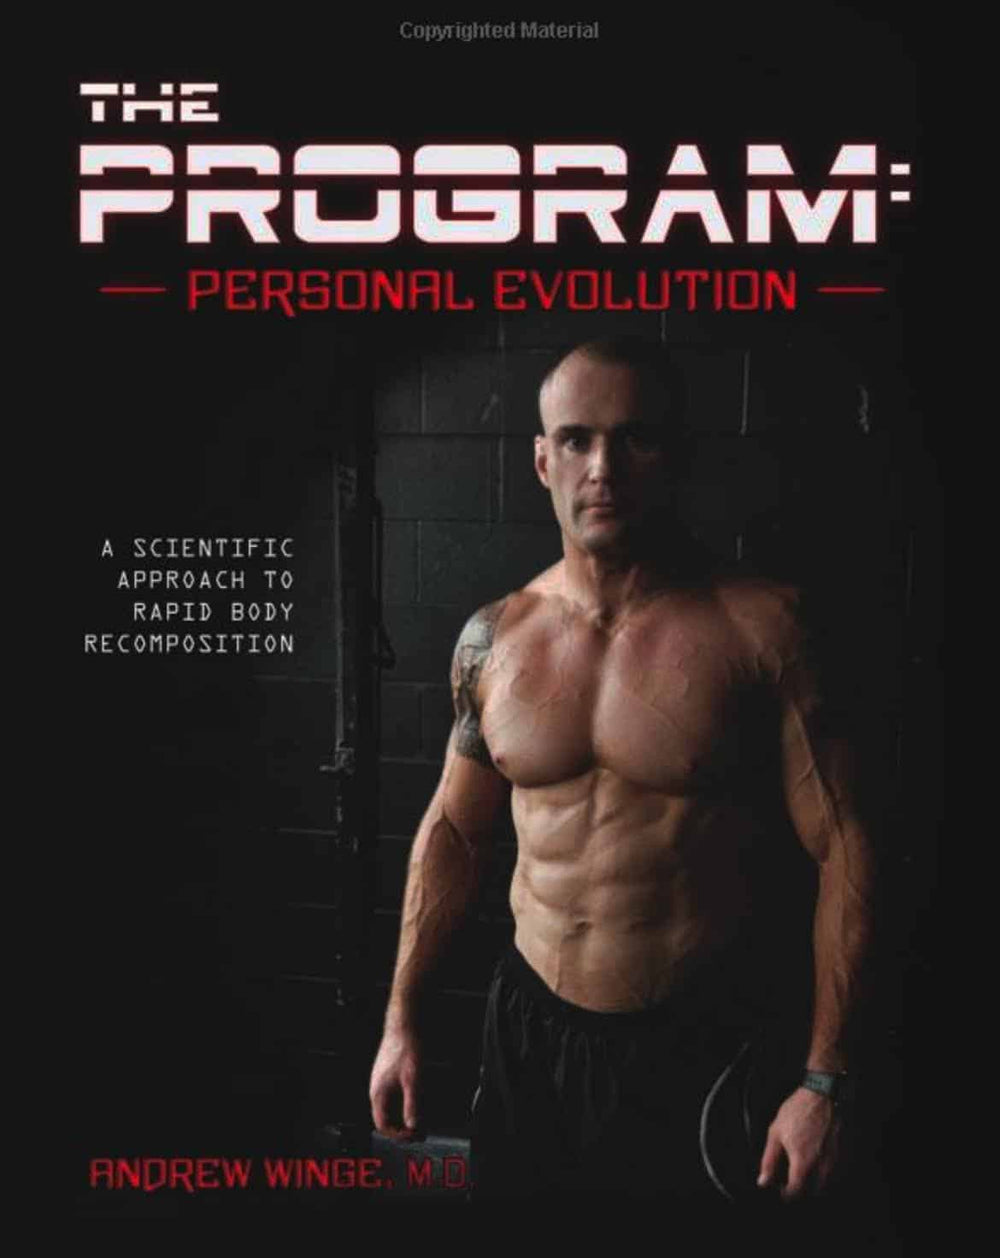 The Program: Personal Evolution